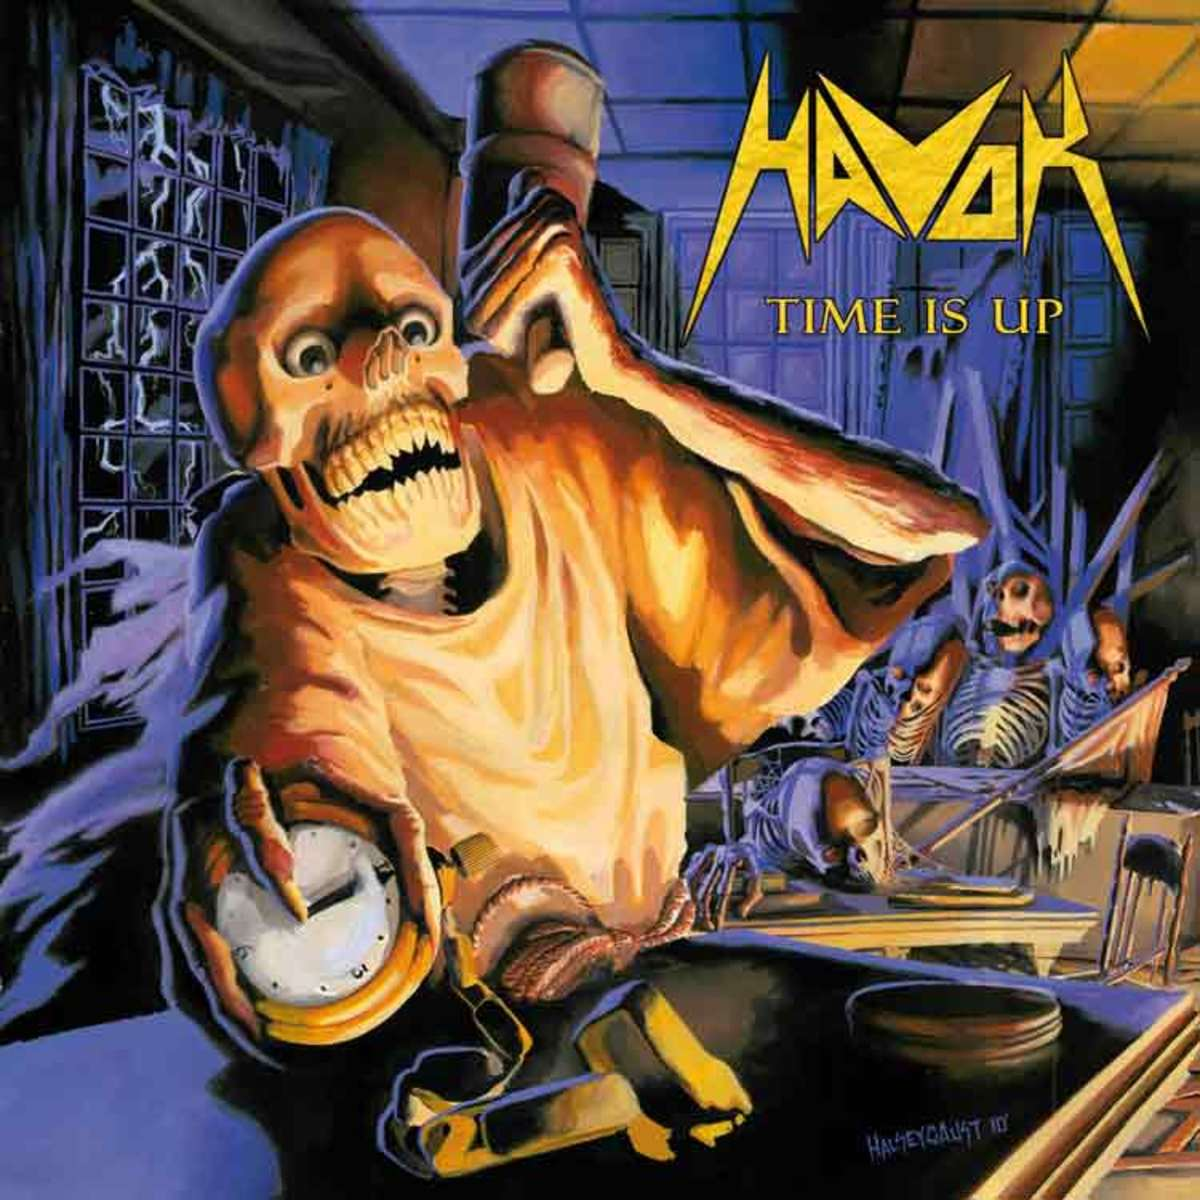 A Review of Havok's